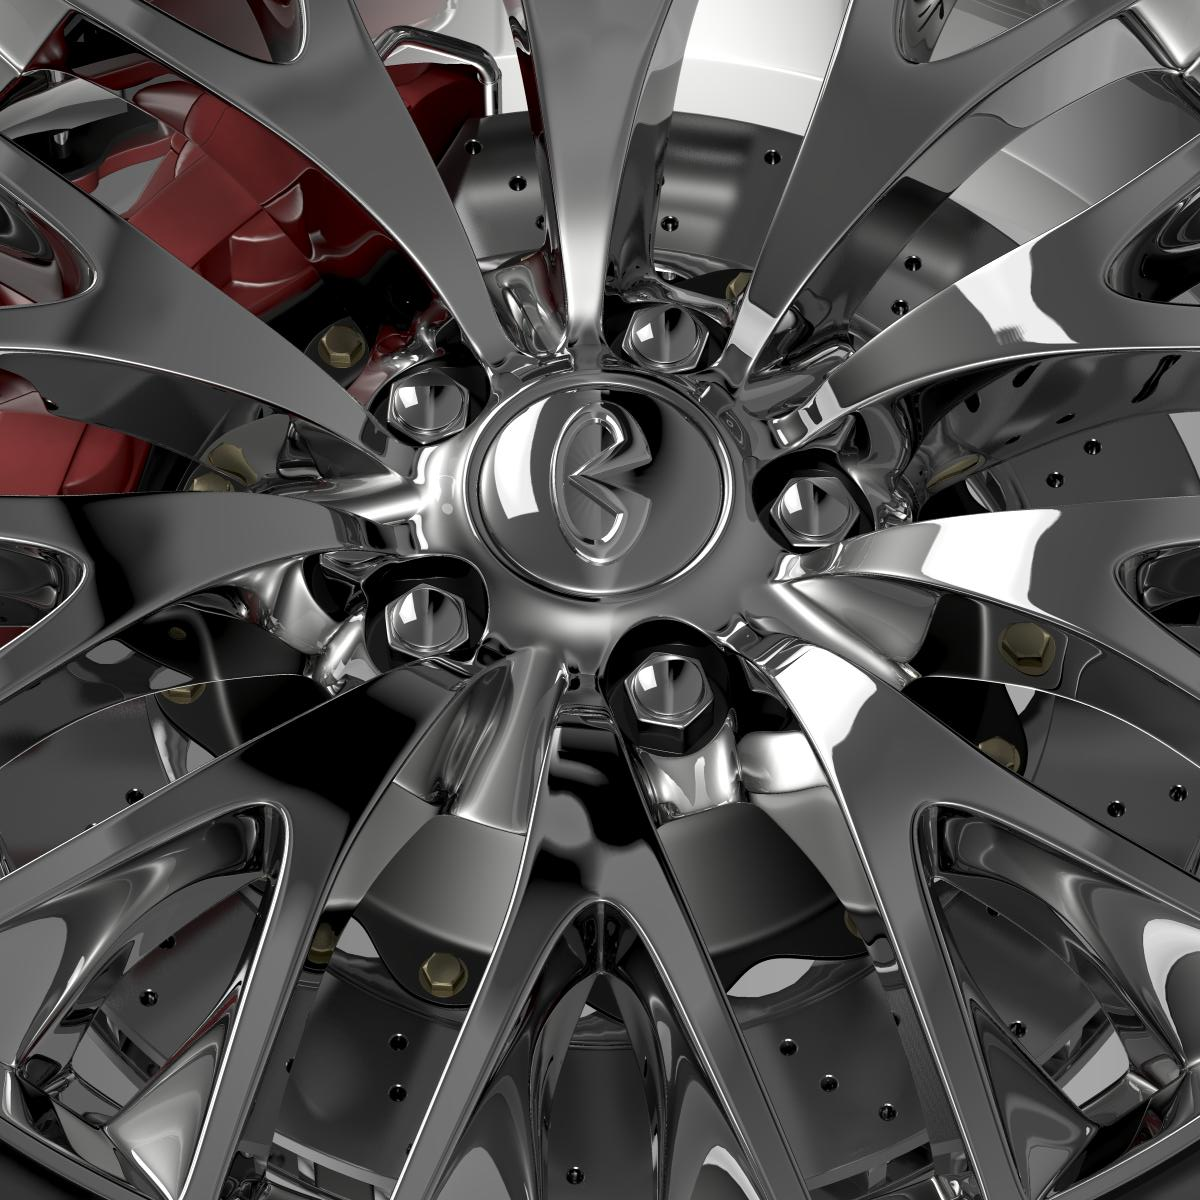 infinity ml wheel 3d model 3ds max fbx c4d lwo ma mb hrc xsi obj 210702